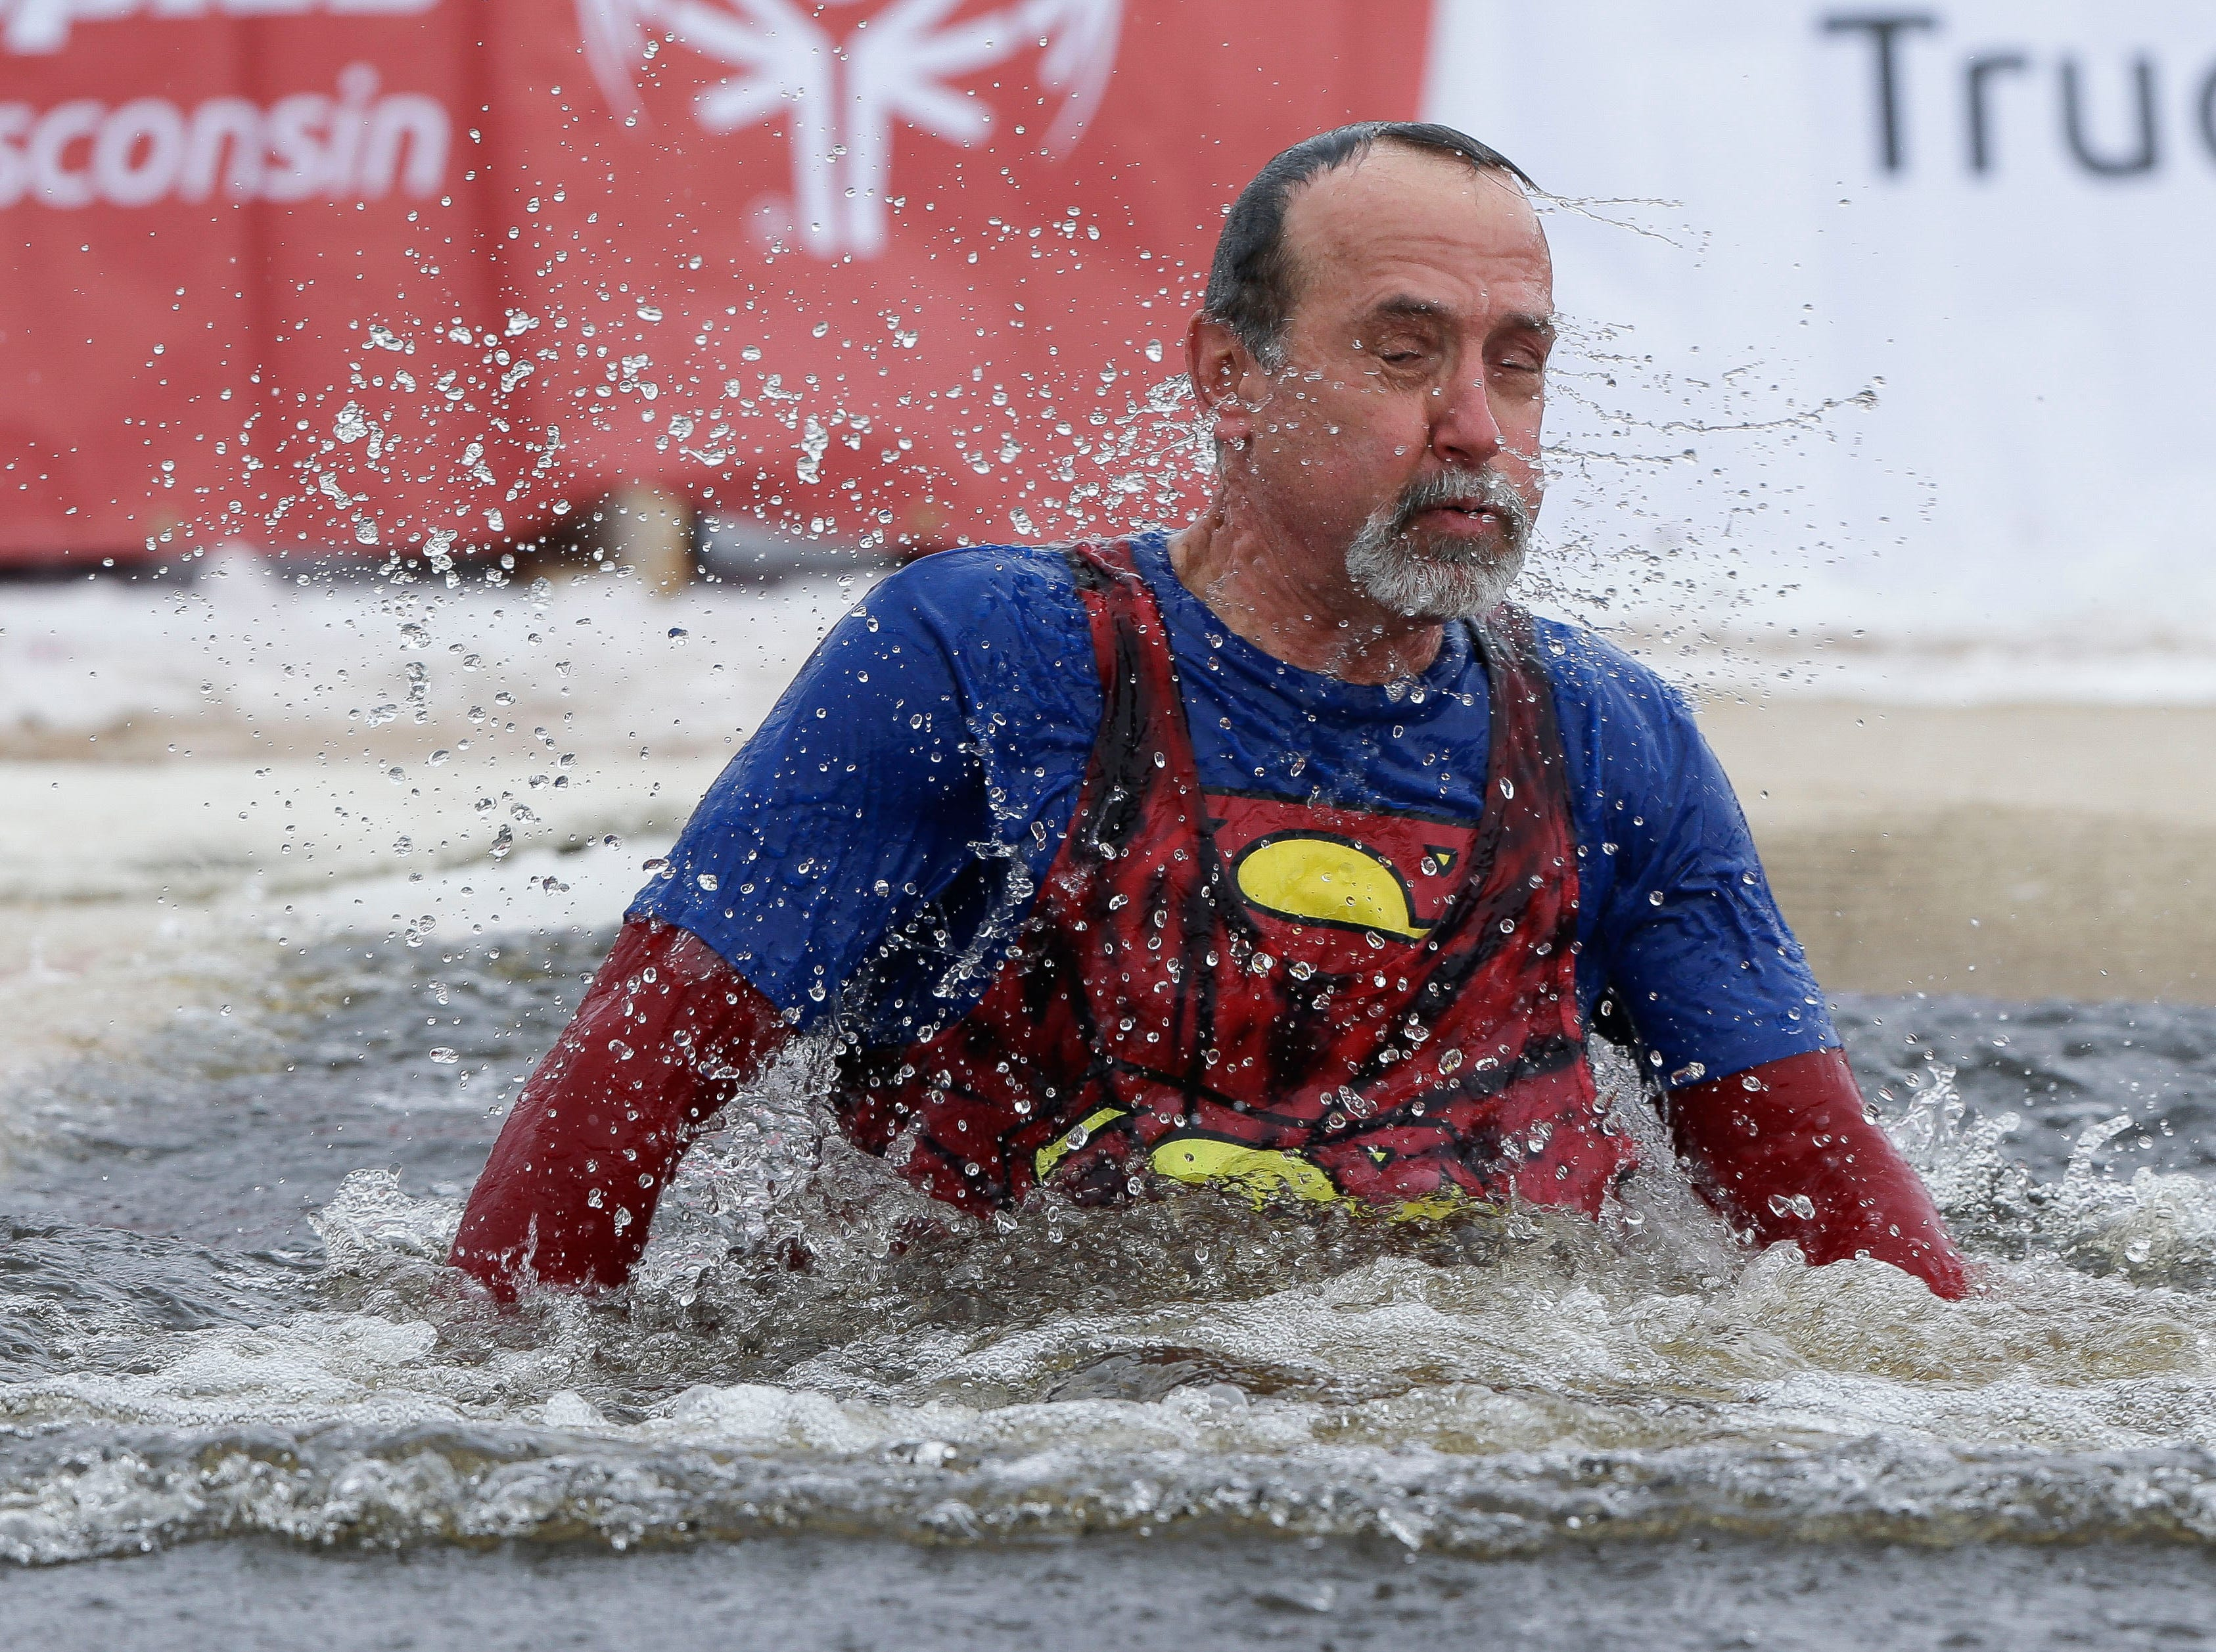 A participant emerges from the water after taking a polar plunge on Saturday, February 2, 2019, at Anchor Bay Bar and Grill in Biron, Wis. The event was one of many polar plunges across the state held as fundraisers for Special Olympics Wisconsin.Tork Mason/USA TODAY NETWORK-Wisconsin